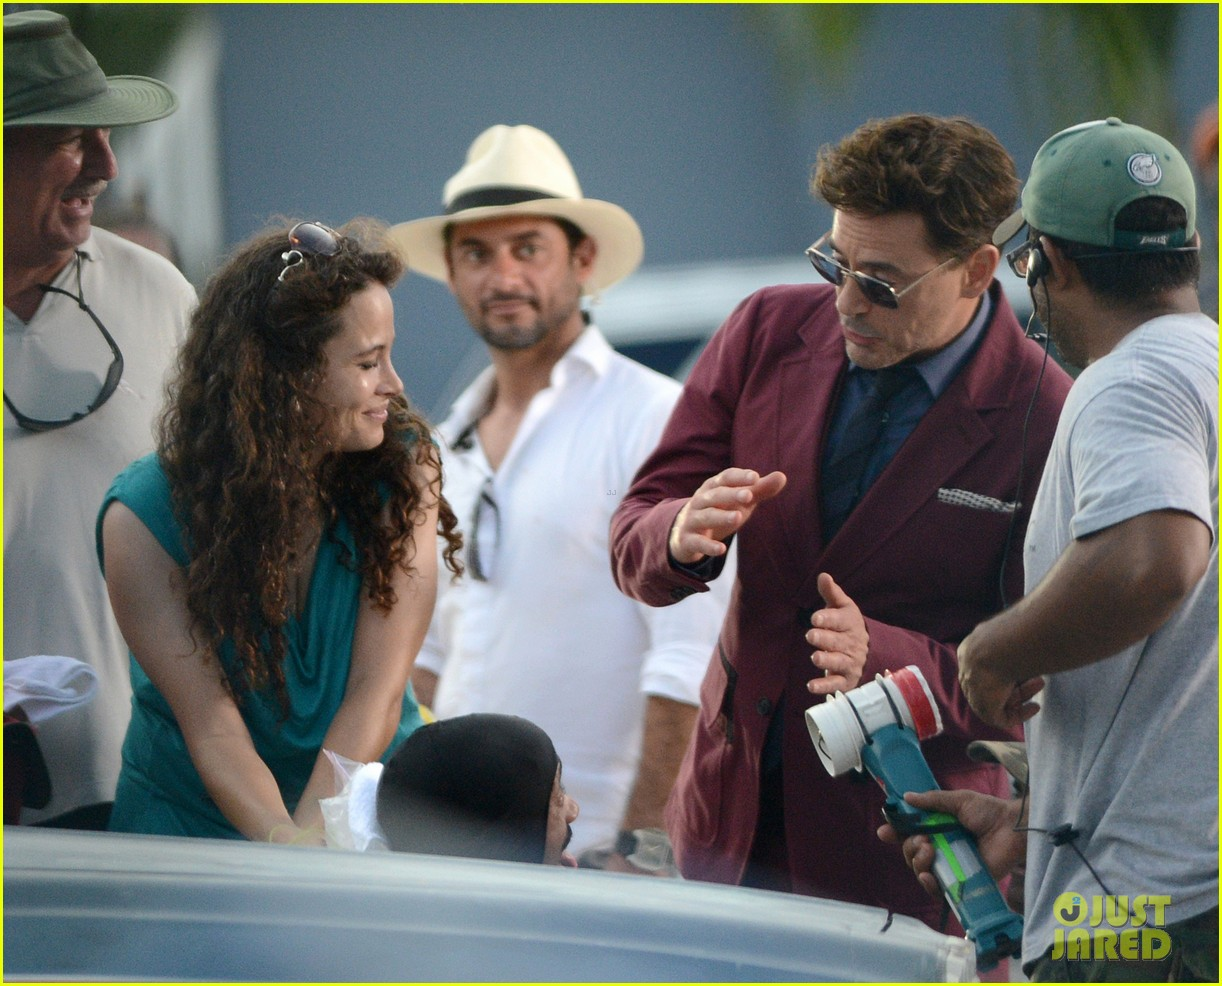 Robert Downey, Jr.: 'Iron Man 4' A Possibility in the Future? Robert Downey